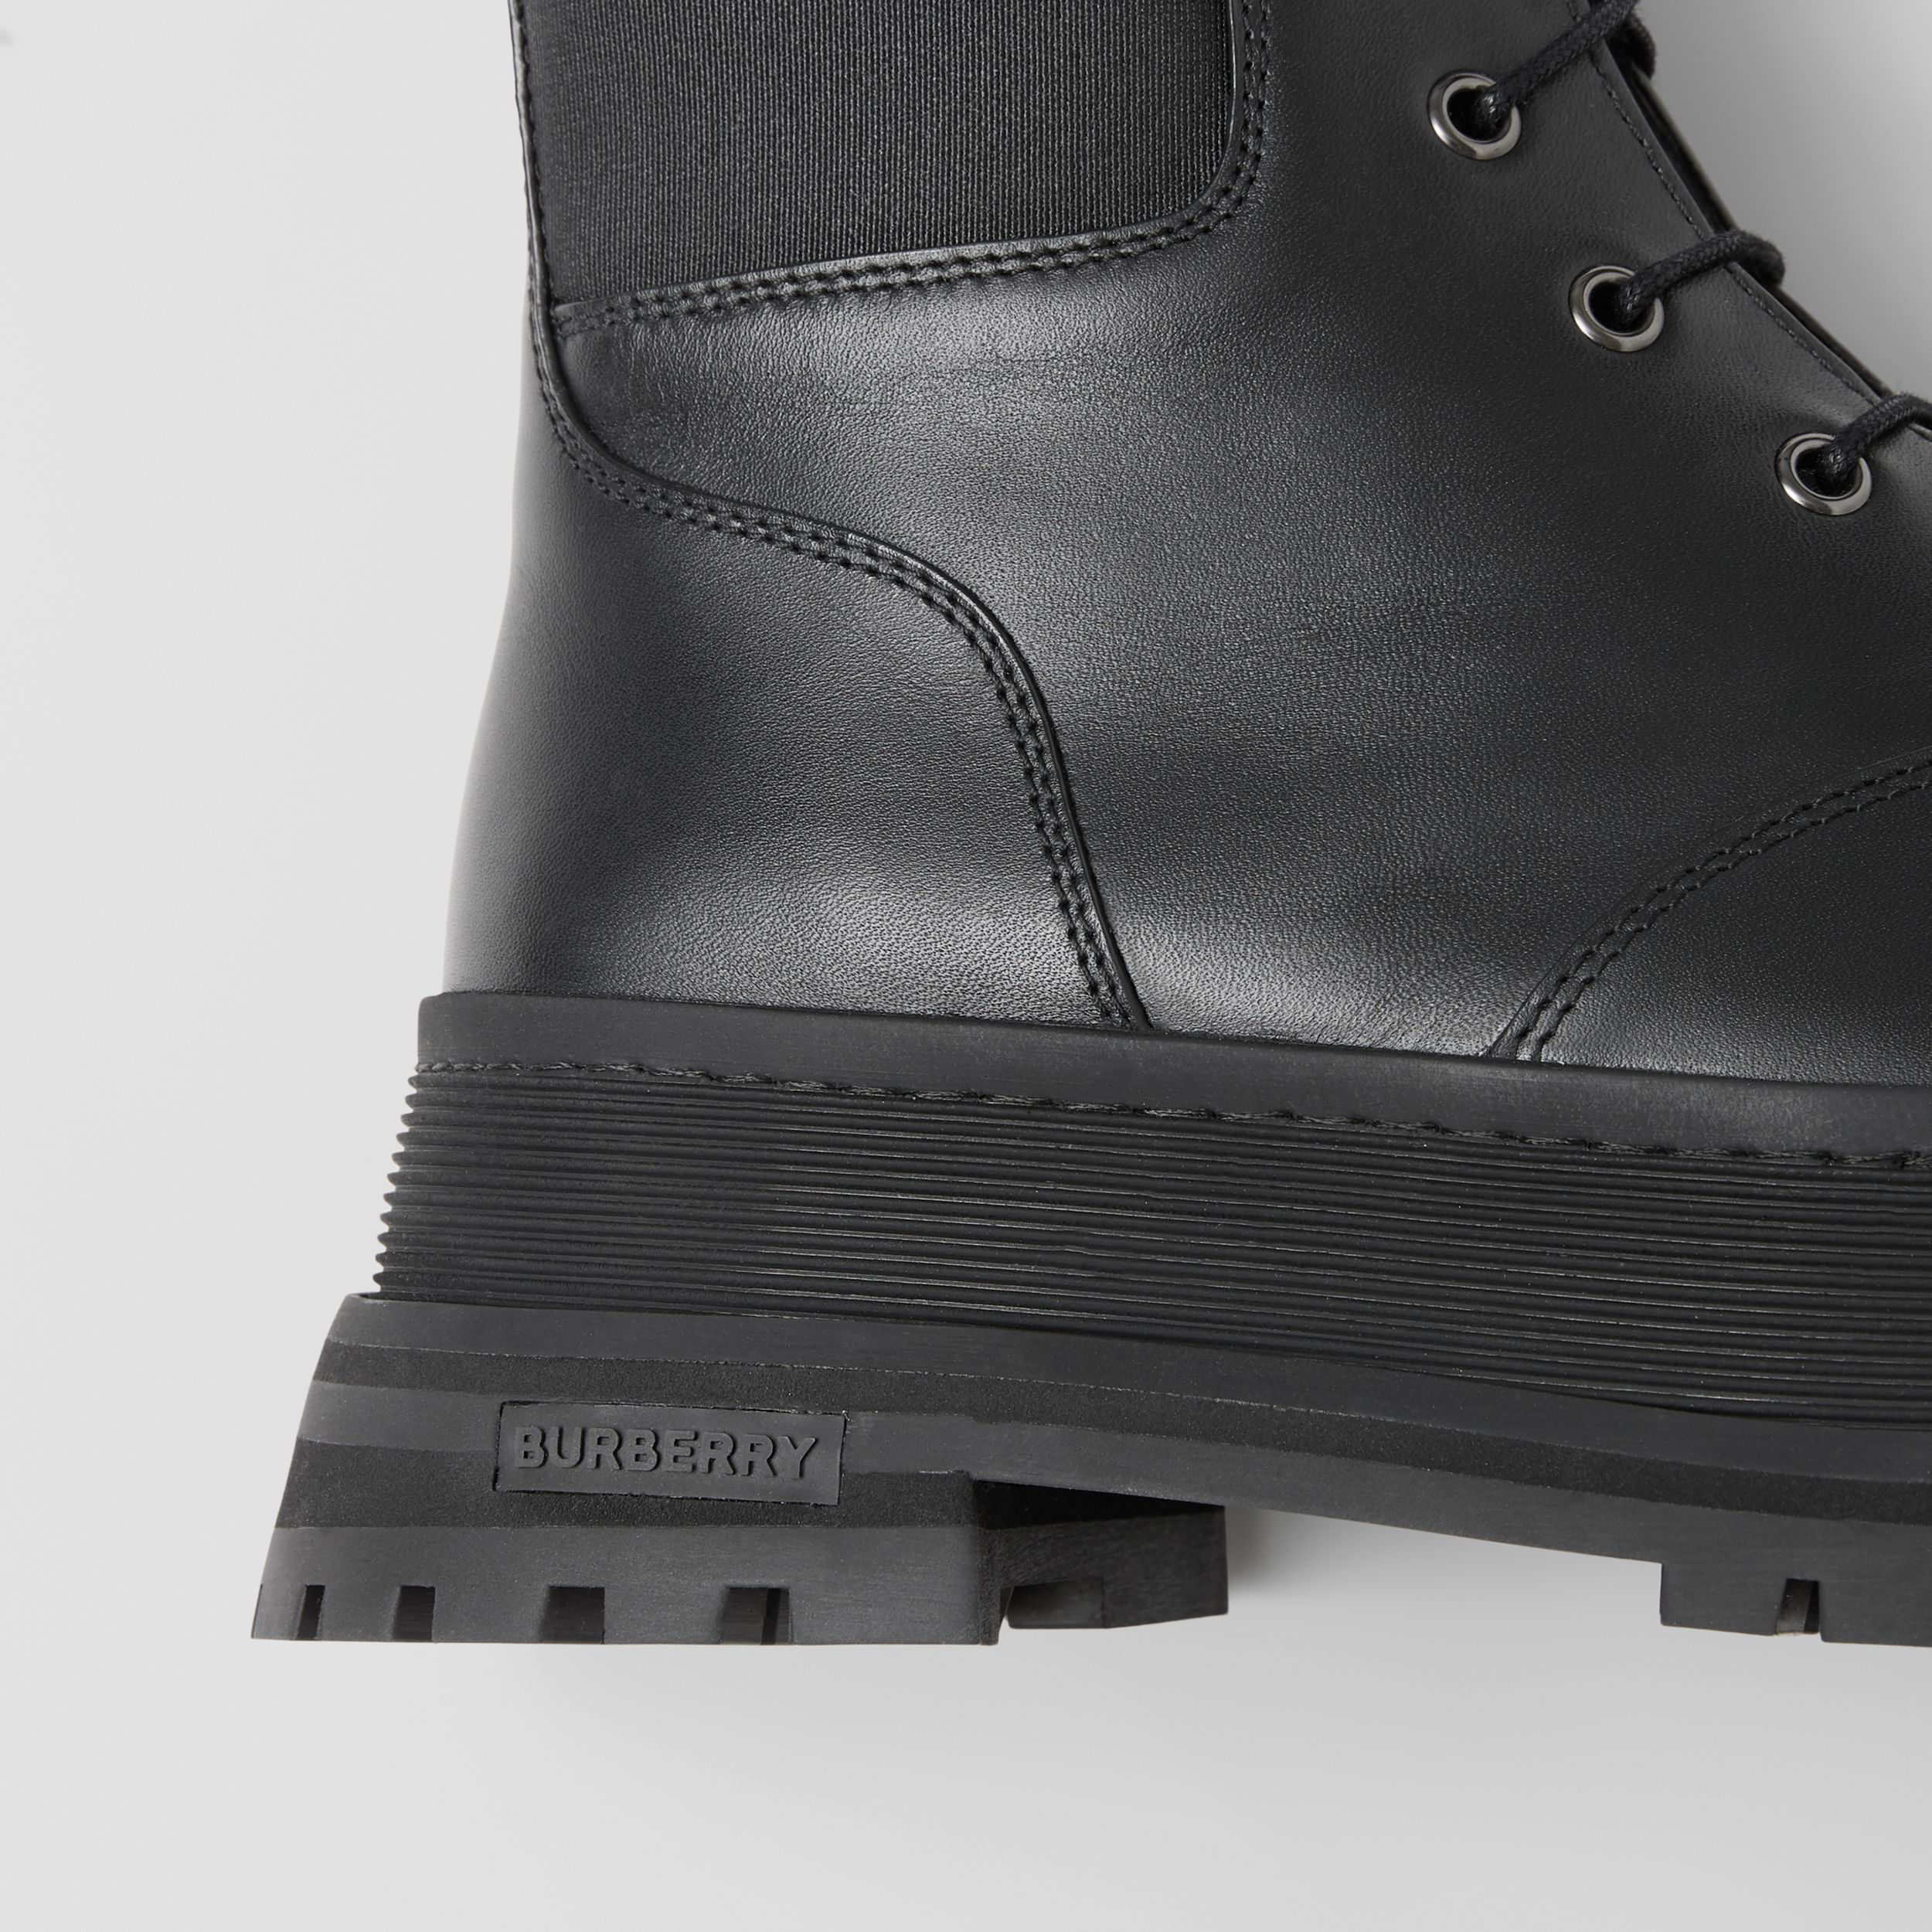 Icon Stripe Detail Lace-up Leather Boots in Black - Women | Burberry United States - 2